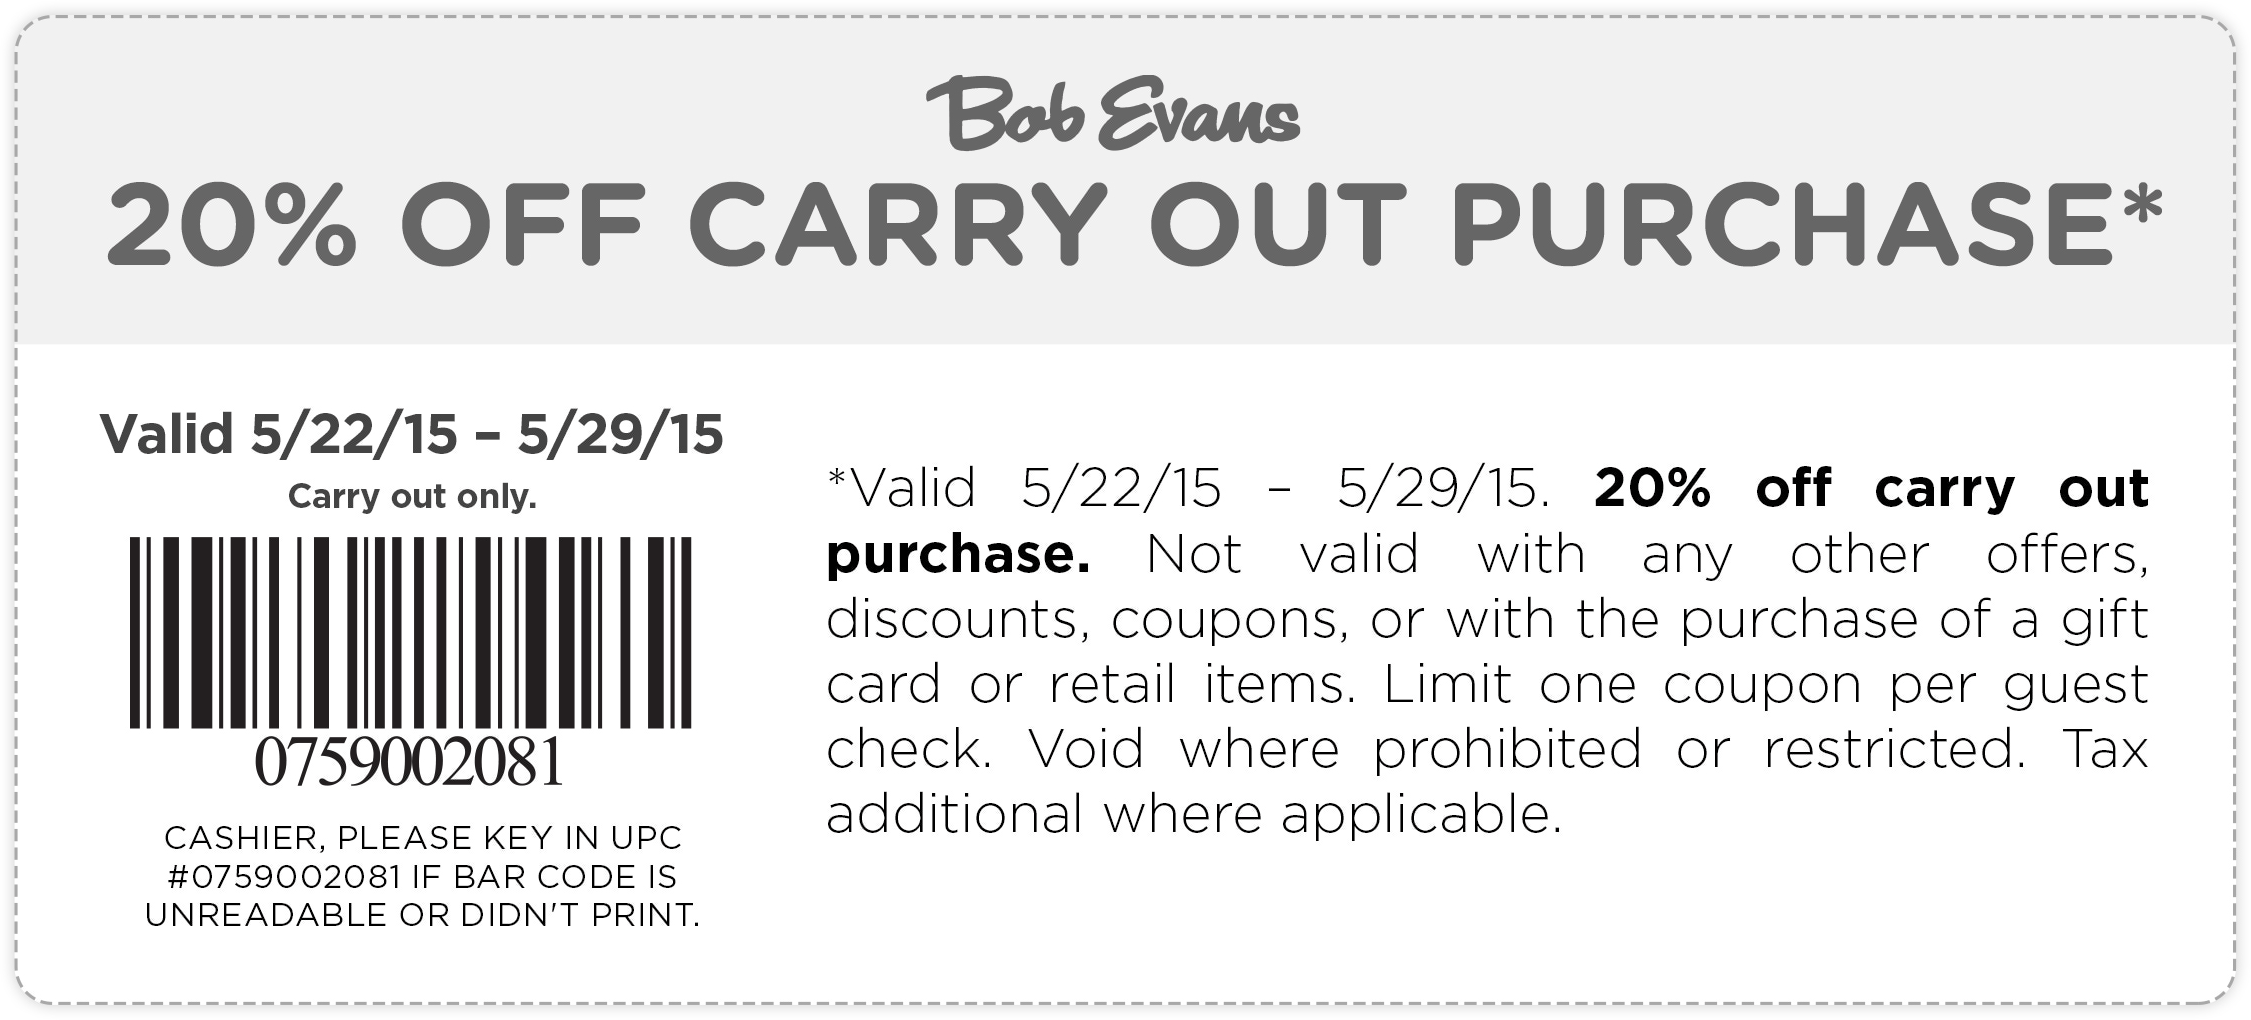 Bob Evans Coupon September 2017 20% off takeout at Bob Evans restaurants